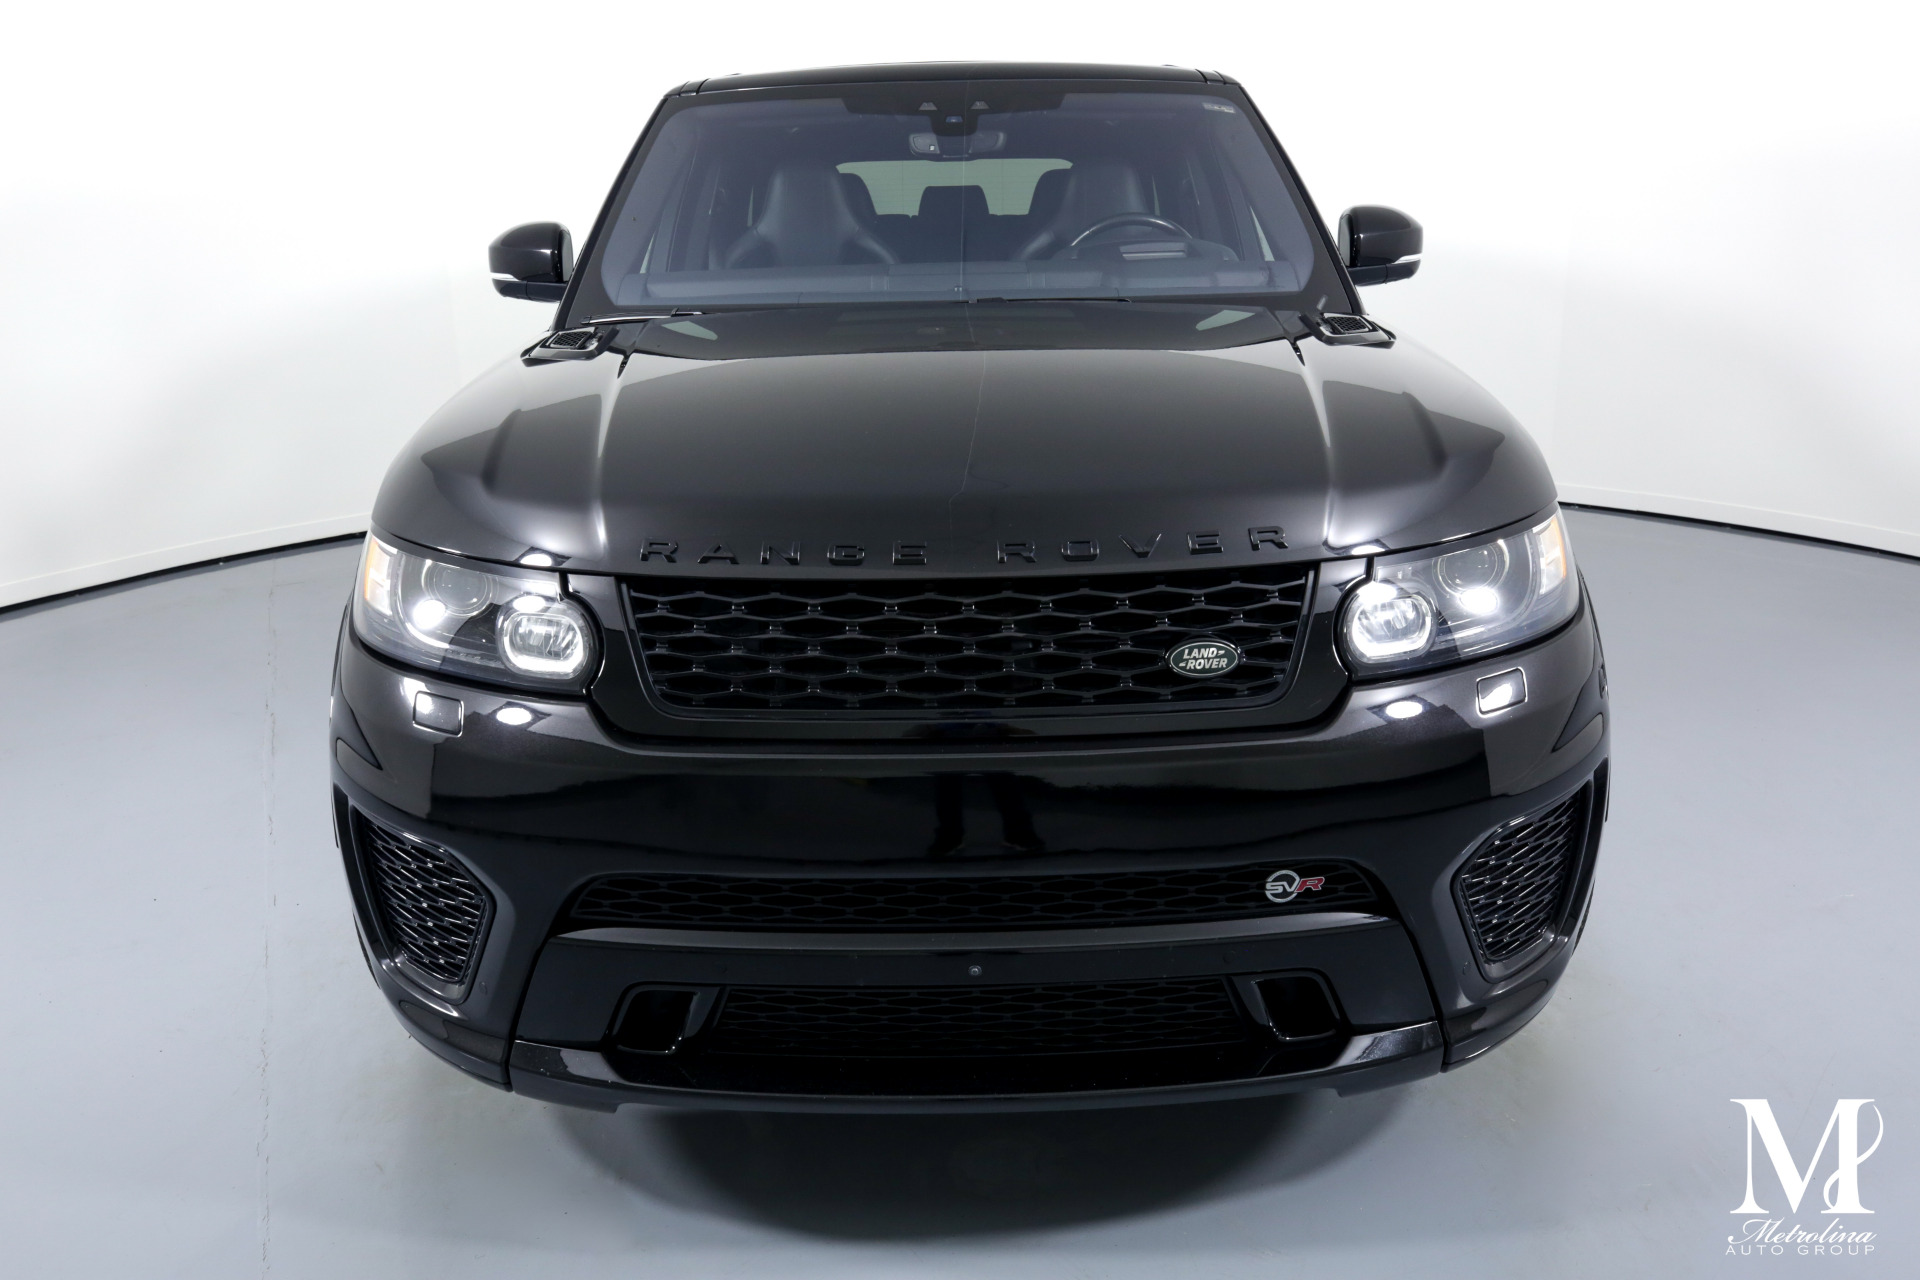 Used 2017 Land Rover Range Rover Sport SVR for sale $69,996 at Metrolina Auto Group in Charlotte NC 28217 - 3